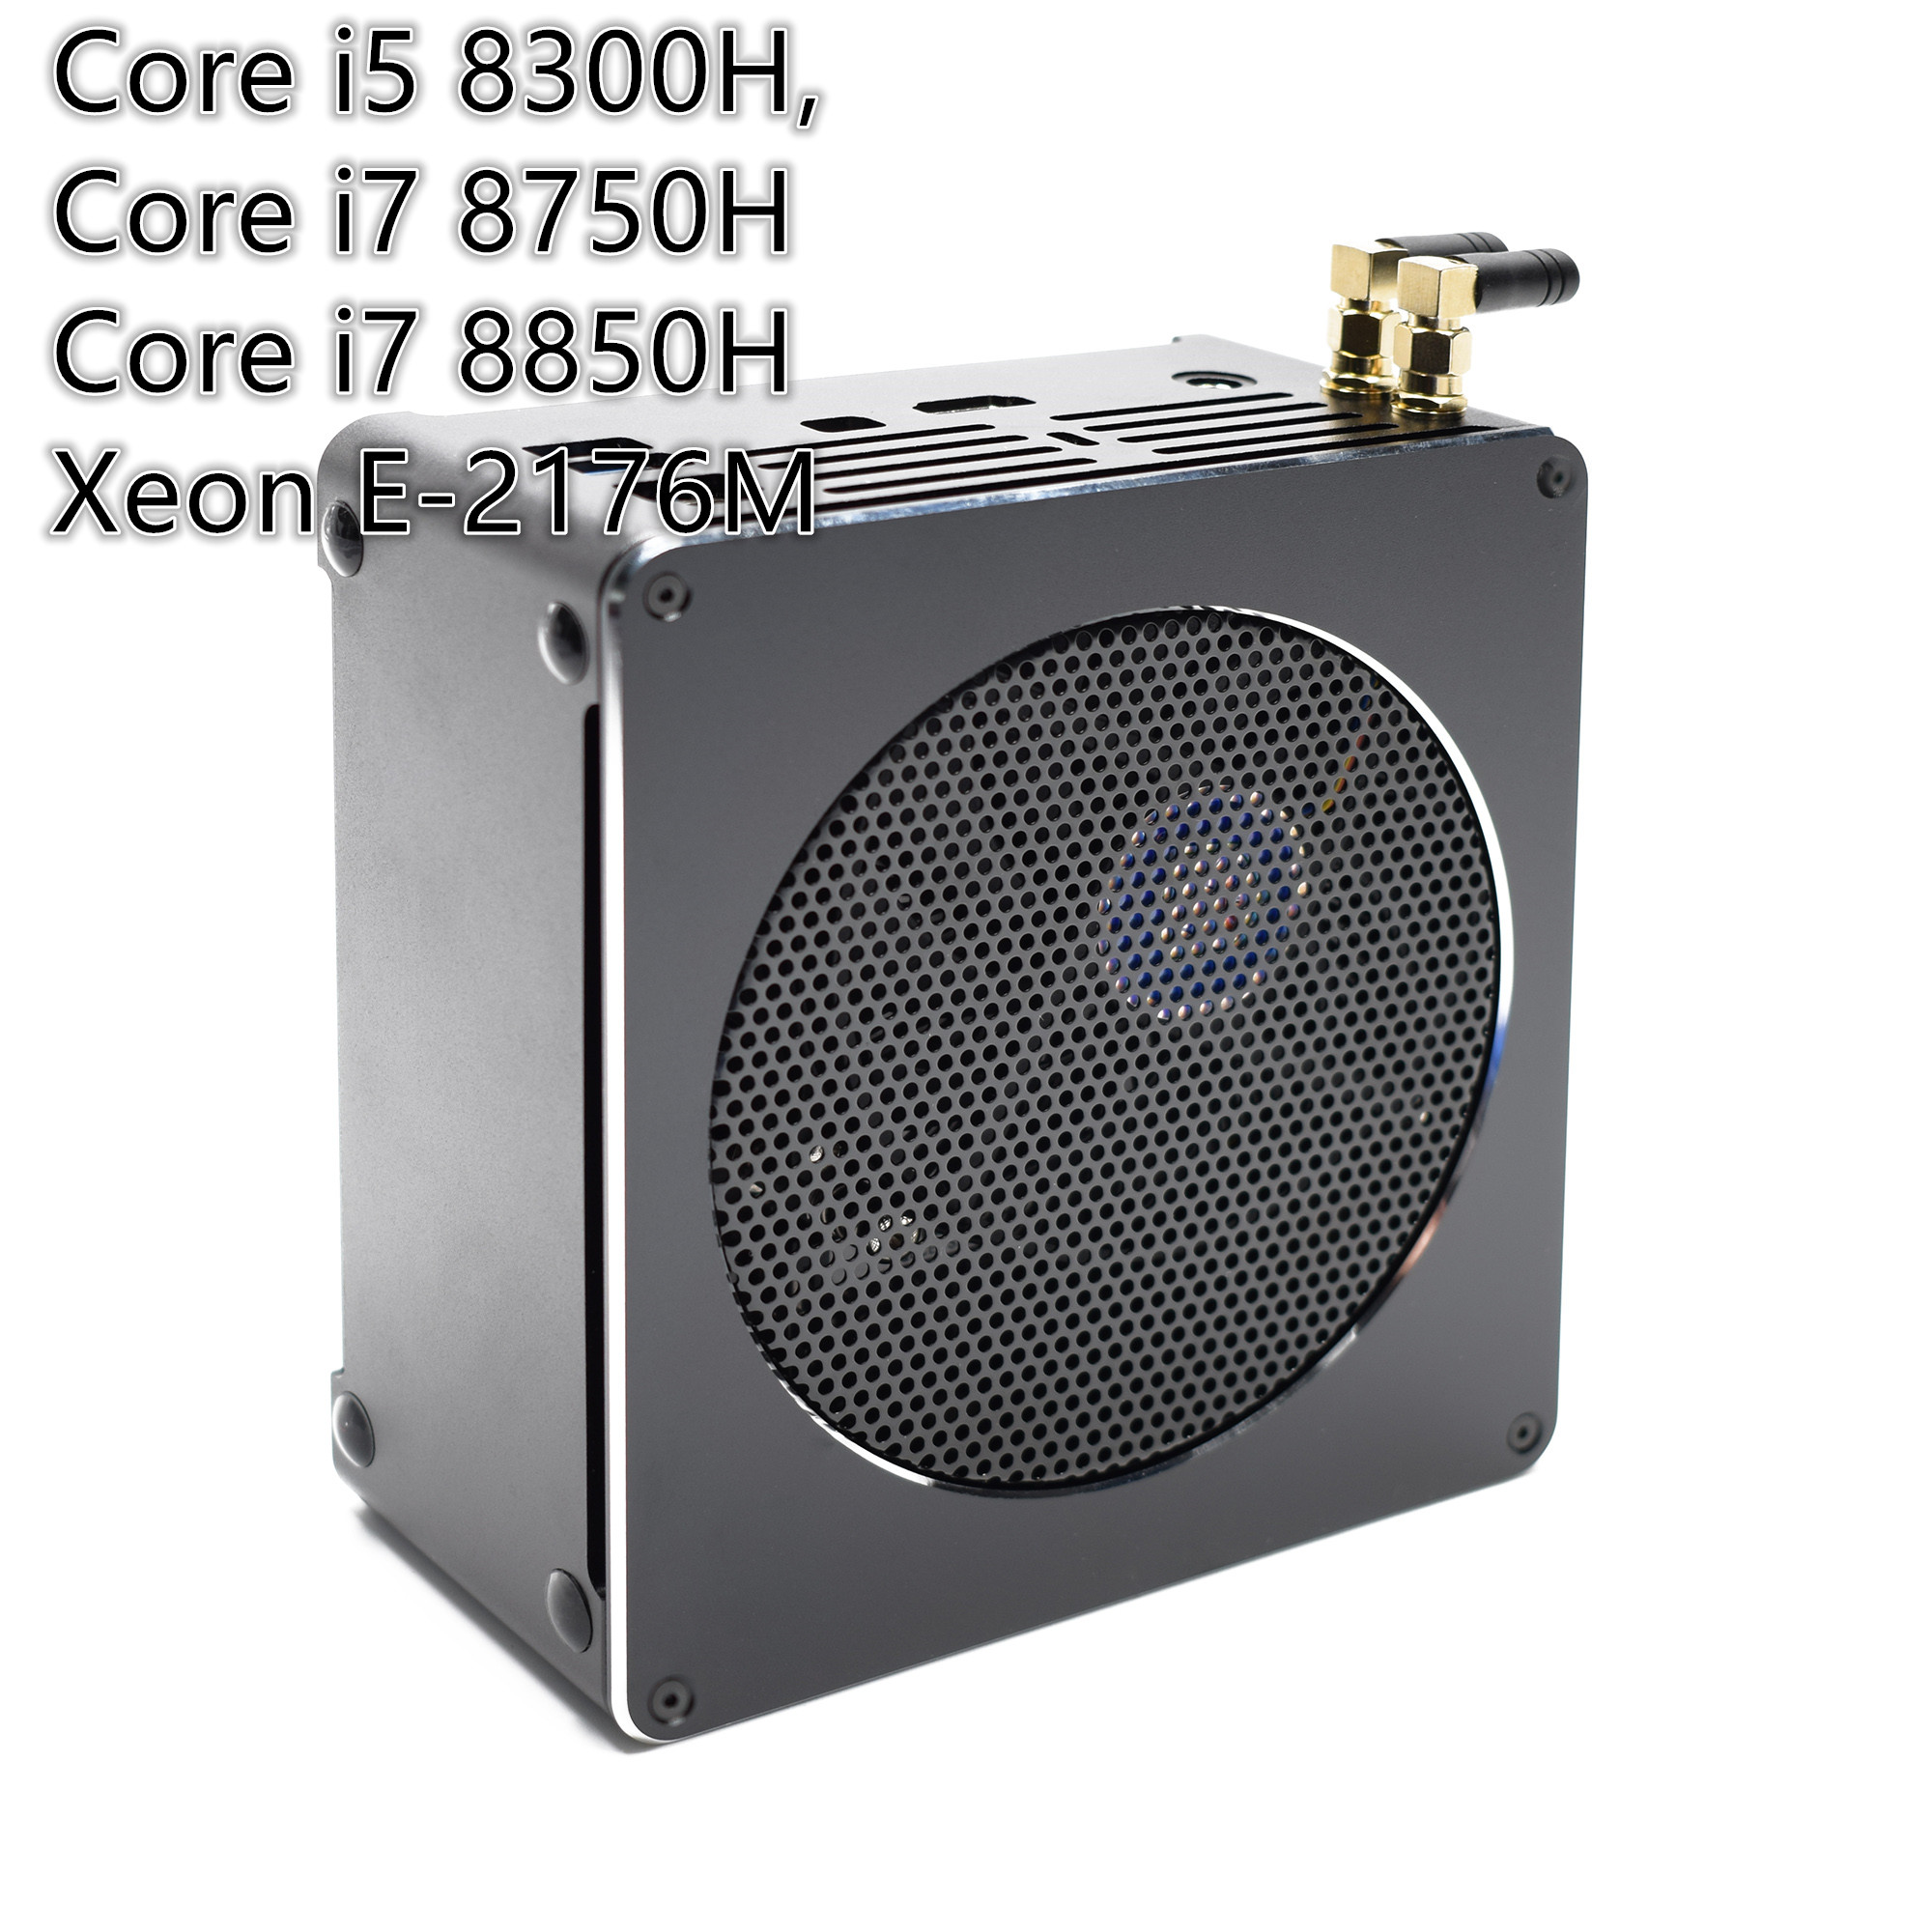 High Quality Gaming Mini PC I7 8750H/8850H I5 8300H E3-1505M 6 Core 12 Threads 64GB DDR4 With AC Wifi Win10 Pro Computer